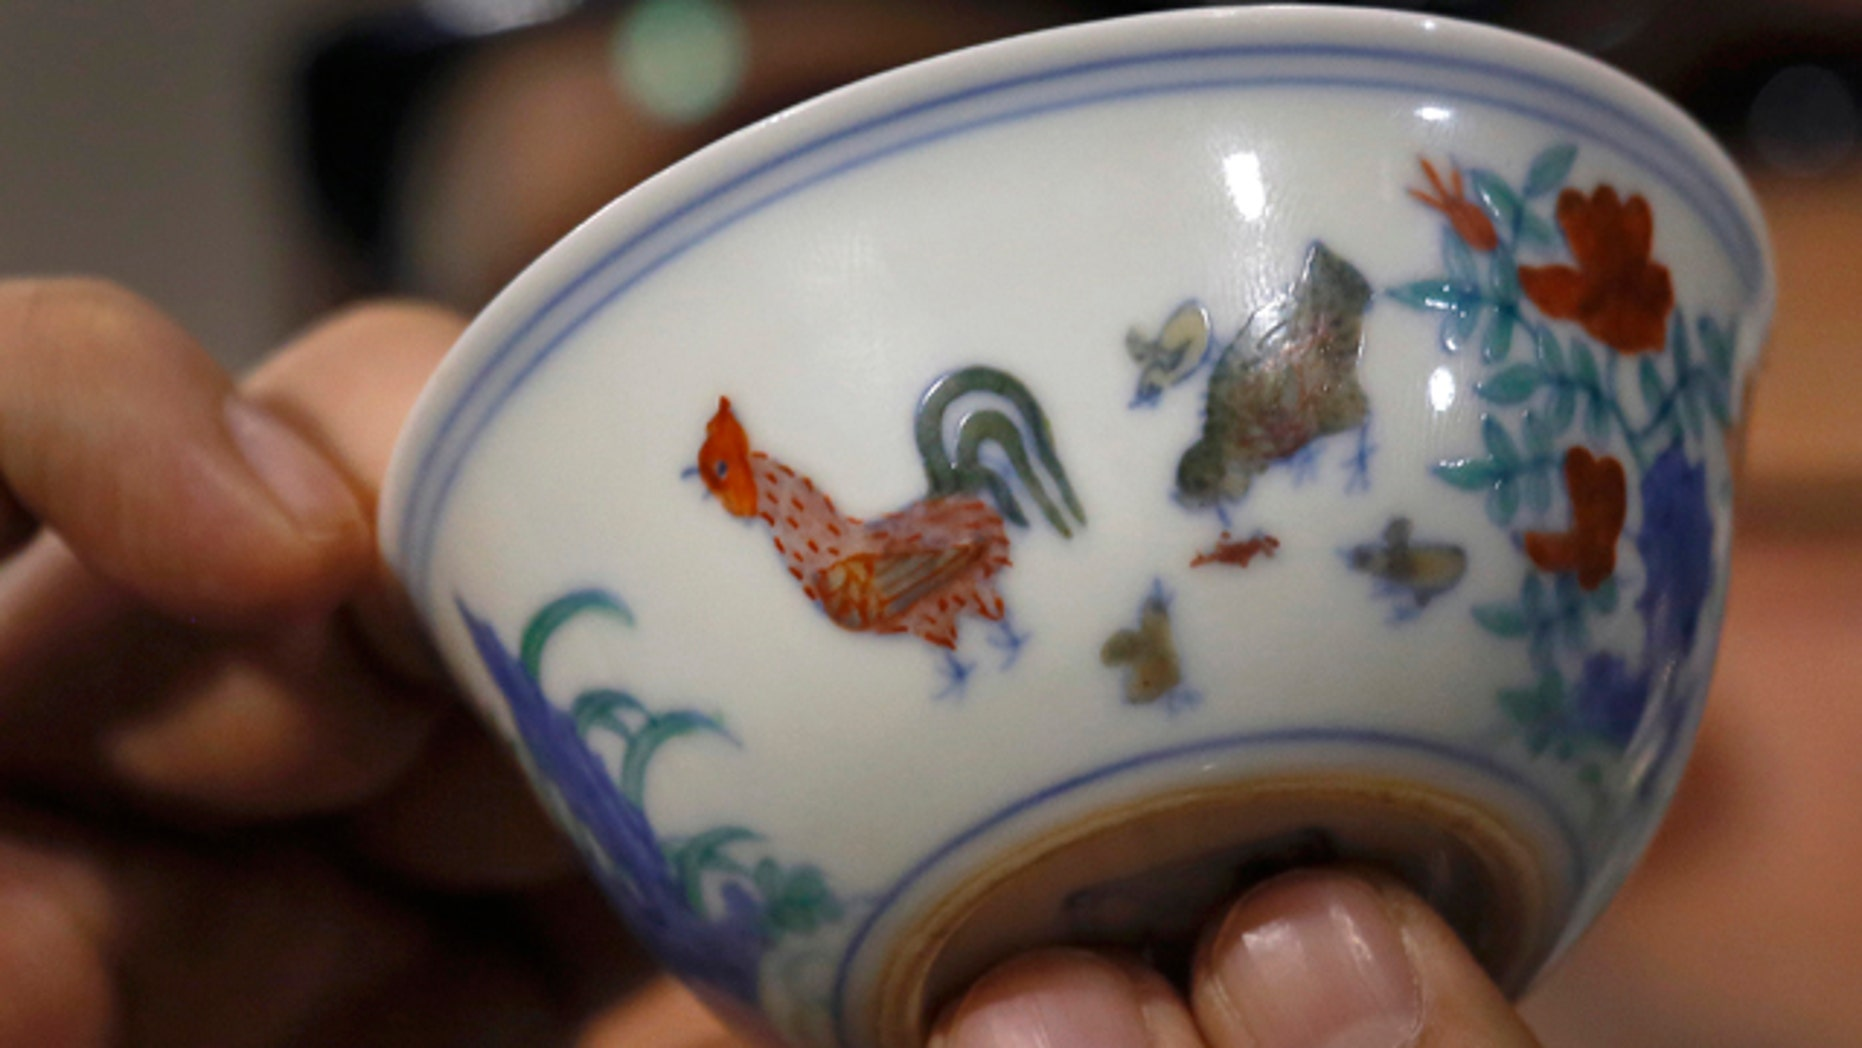 April 8, 2014: The Meiyintang Chicken Cup from the Chinese Ming Dynasty (1368-1644) is displayed during a press conference in Hong Kong. Sothebys said Shanghai collector Liu Yiqian won the bidding for the Chicken Cup, which is decorated with a rooster, hen and their chicks. Including the auction house's commission, the price for the small cup comes to $36.1 million, which Sothebys said is a world record price for Chinese porcelain. (AP Photo/Vincent Yu)